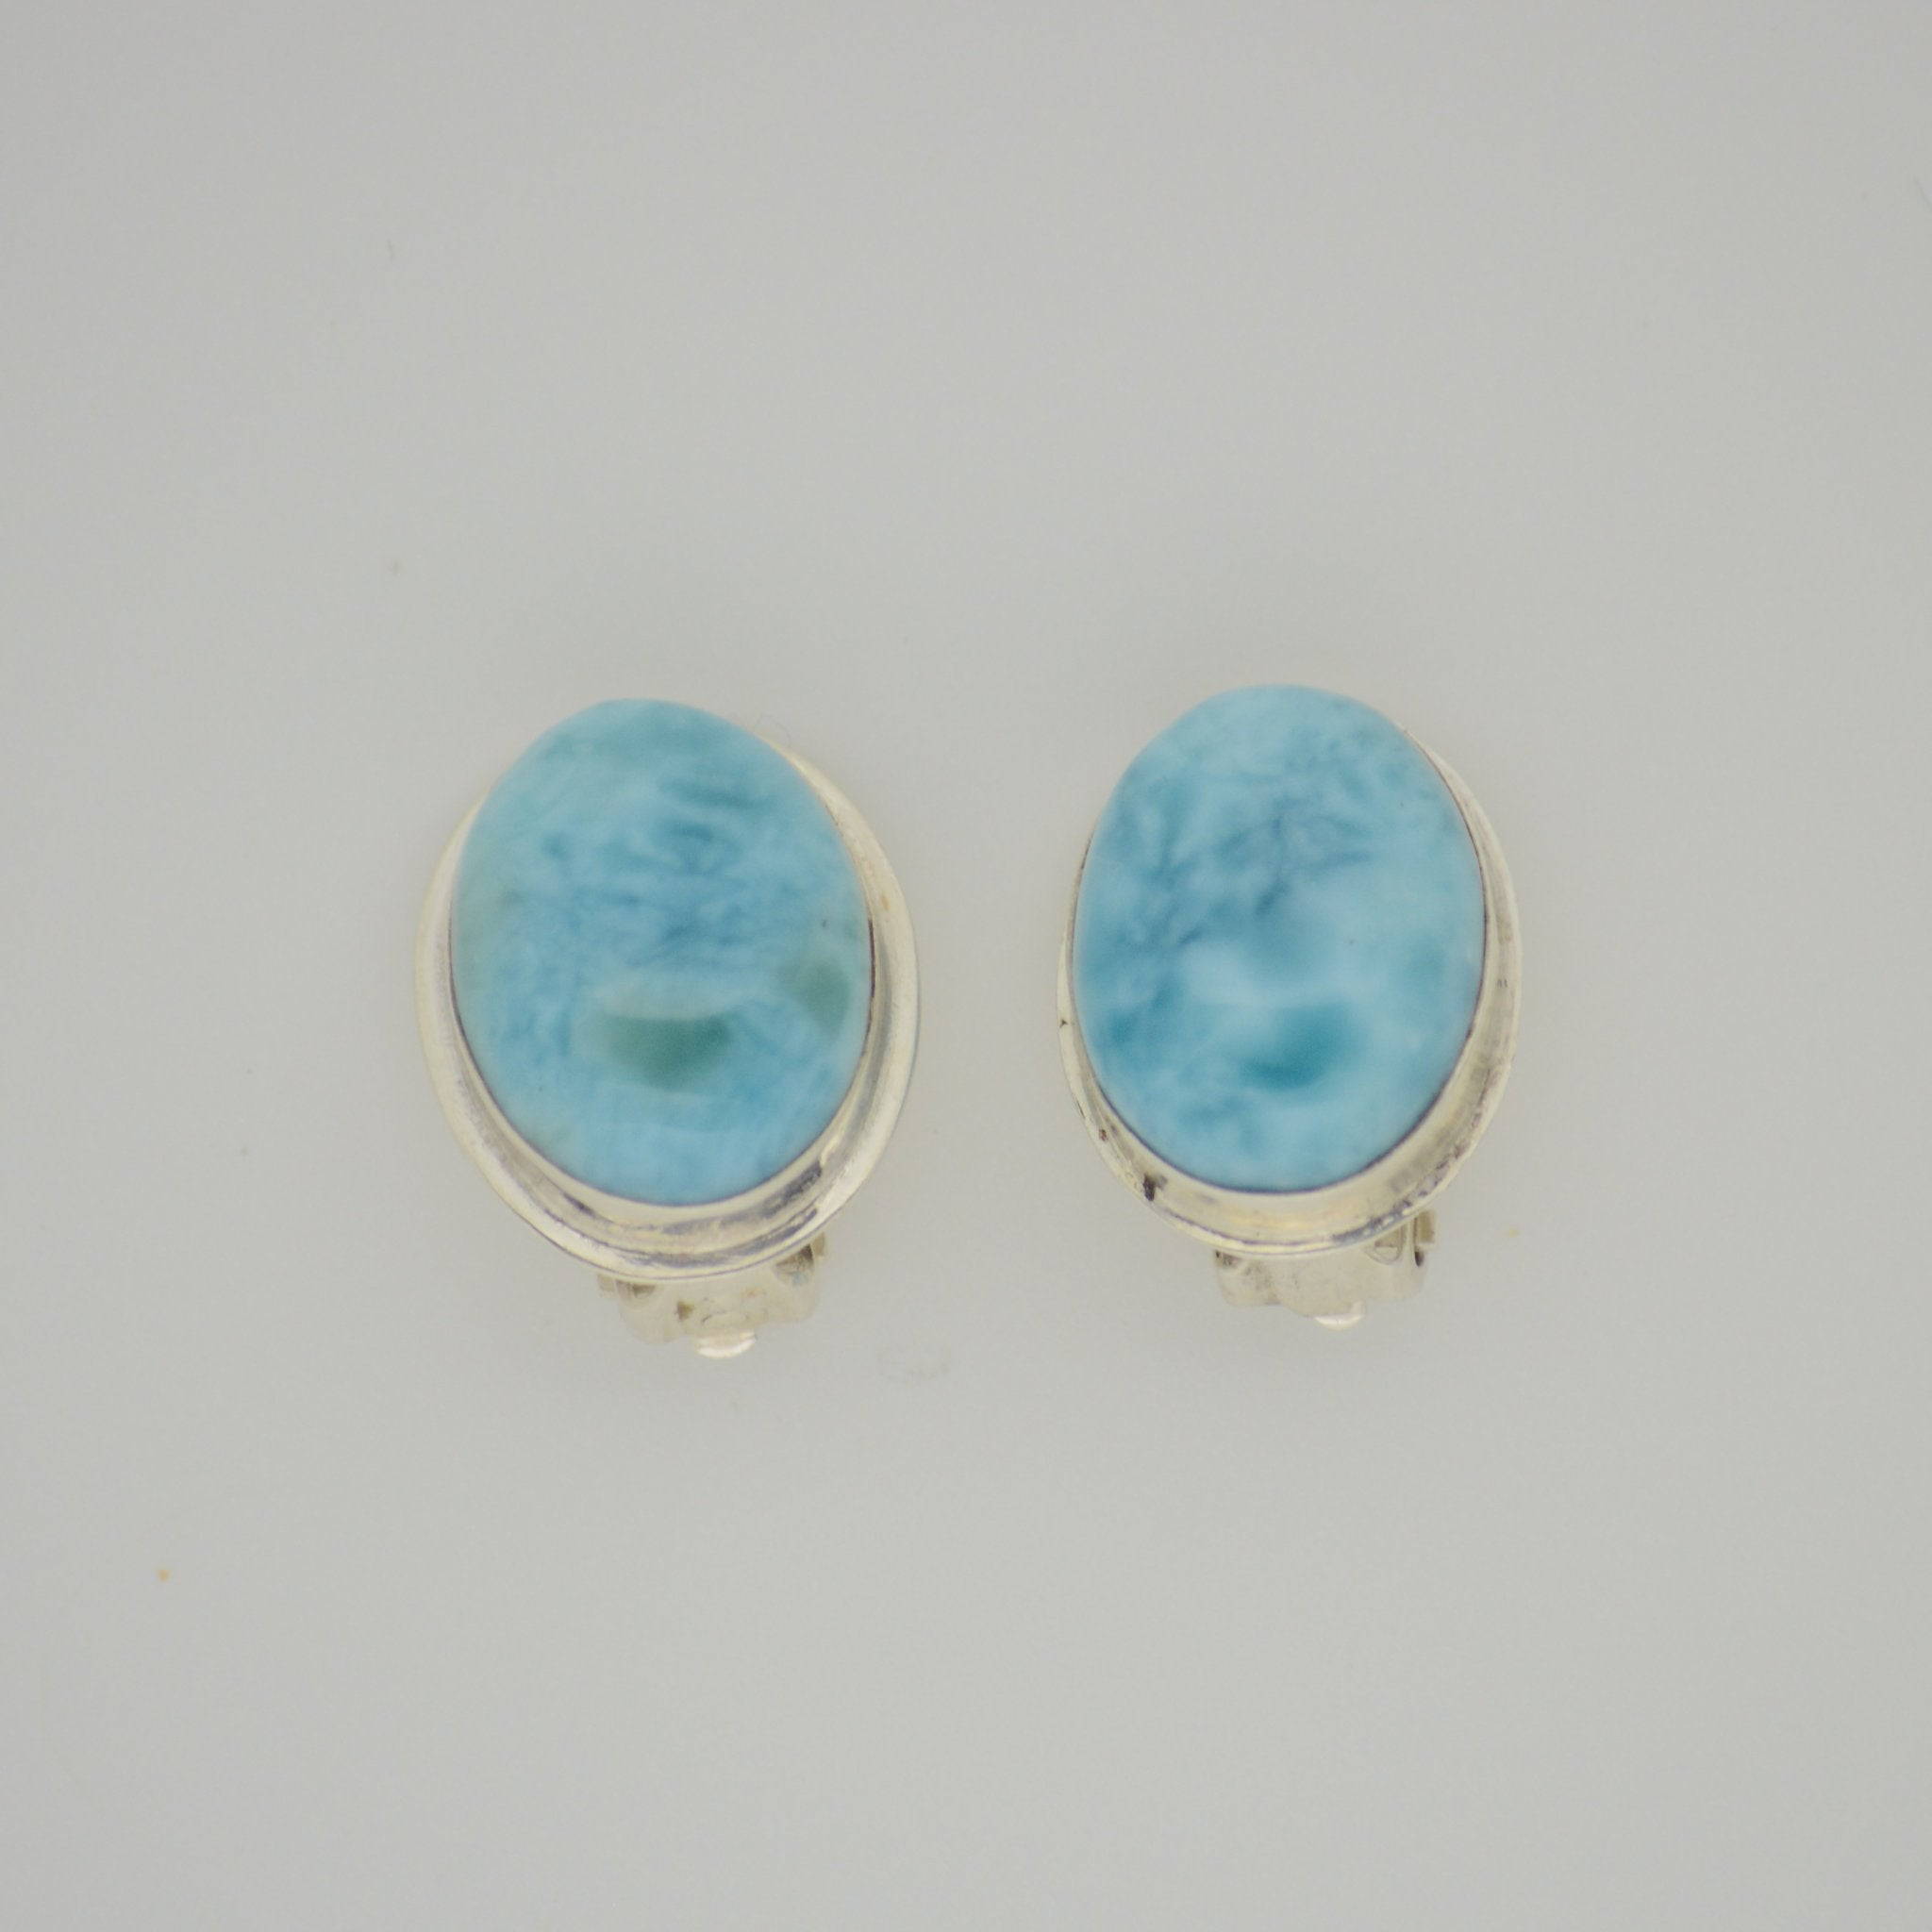 Larimar Clip on Earrings 8.7g